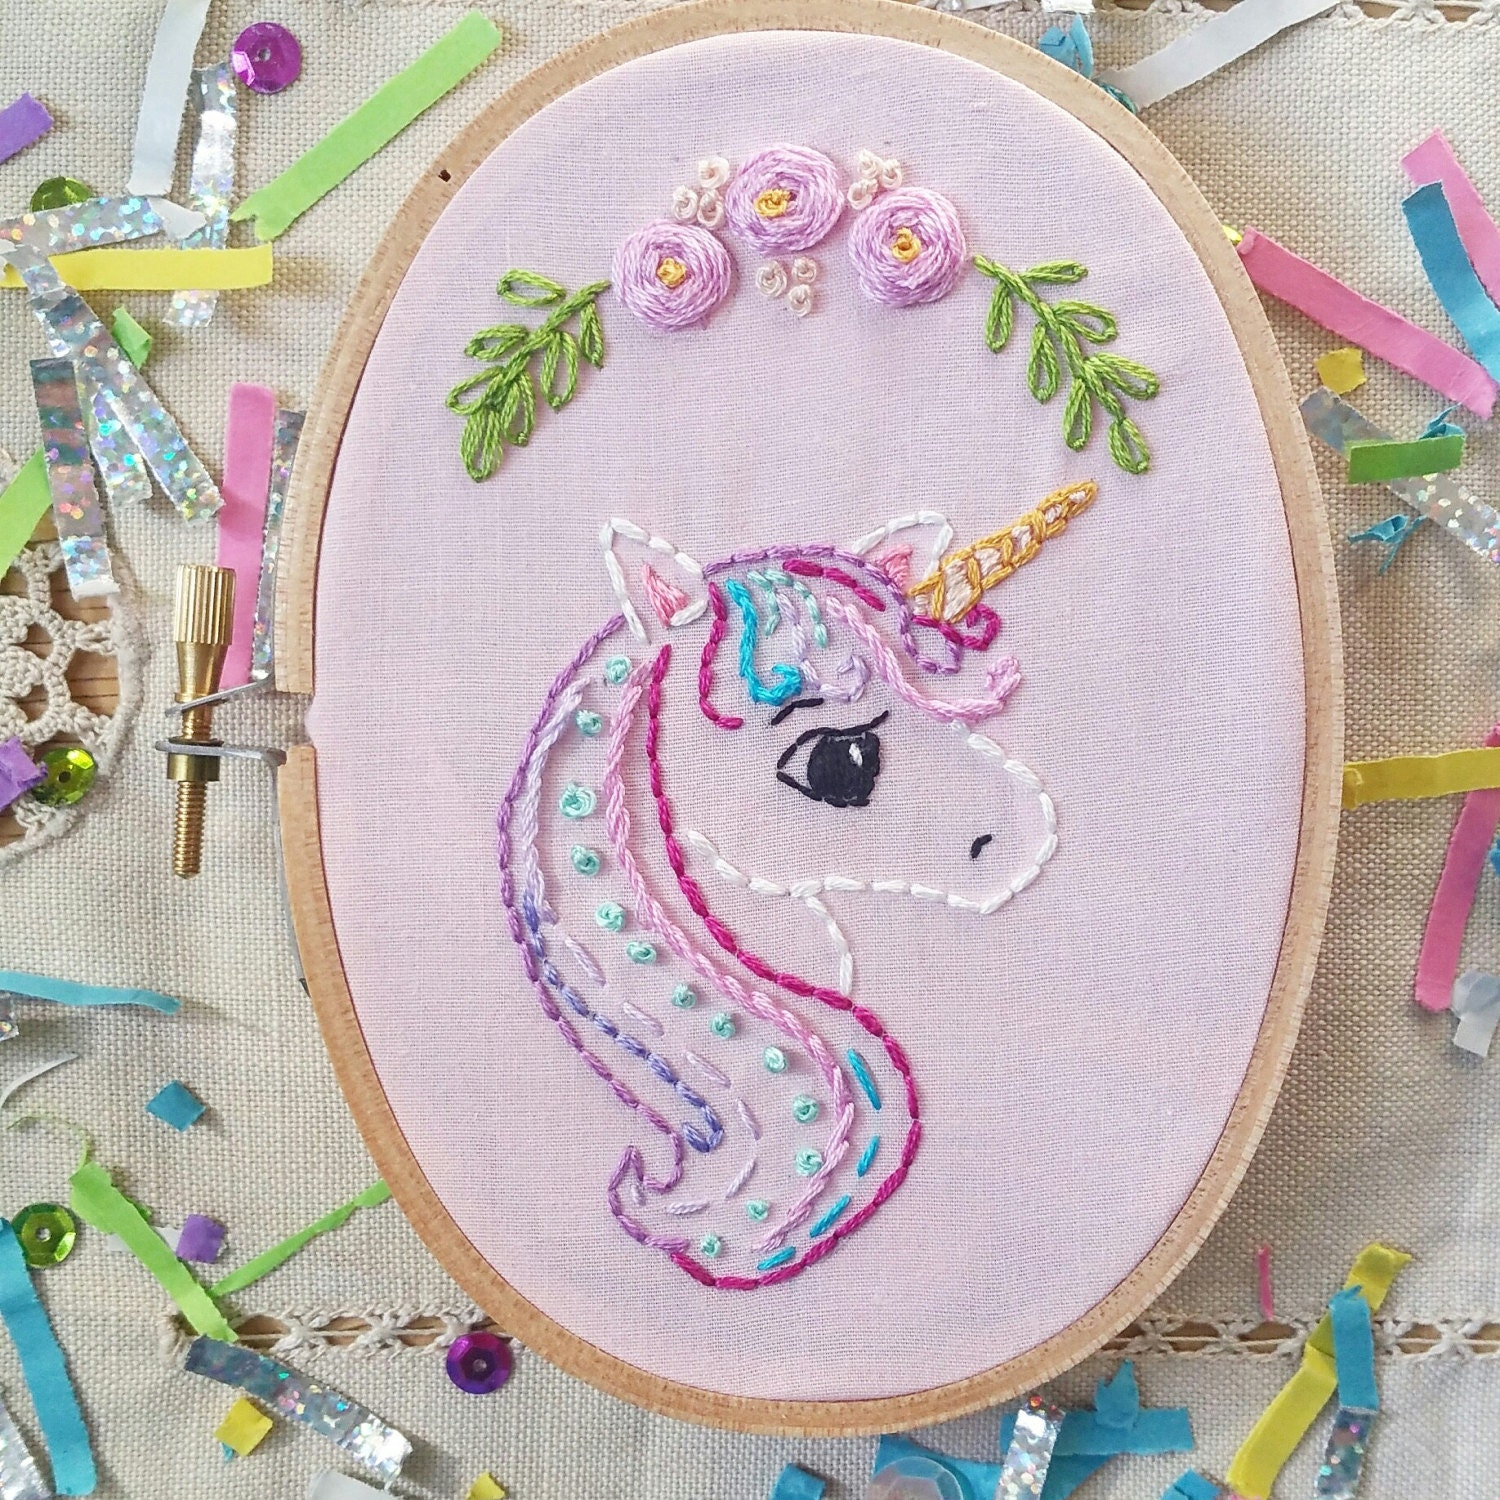 Unicorn embroidery hoop pastel colors sweet with